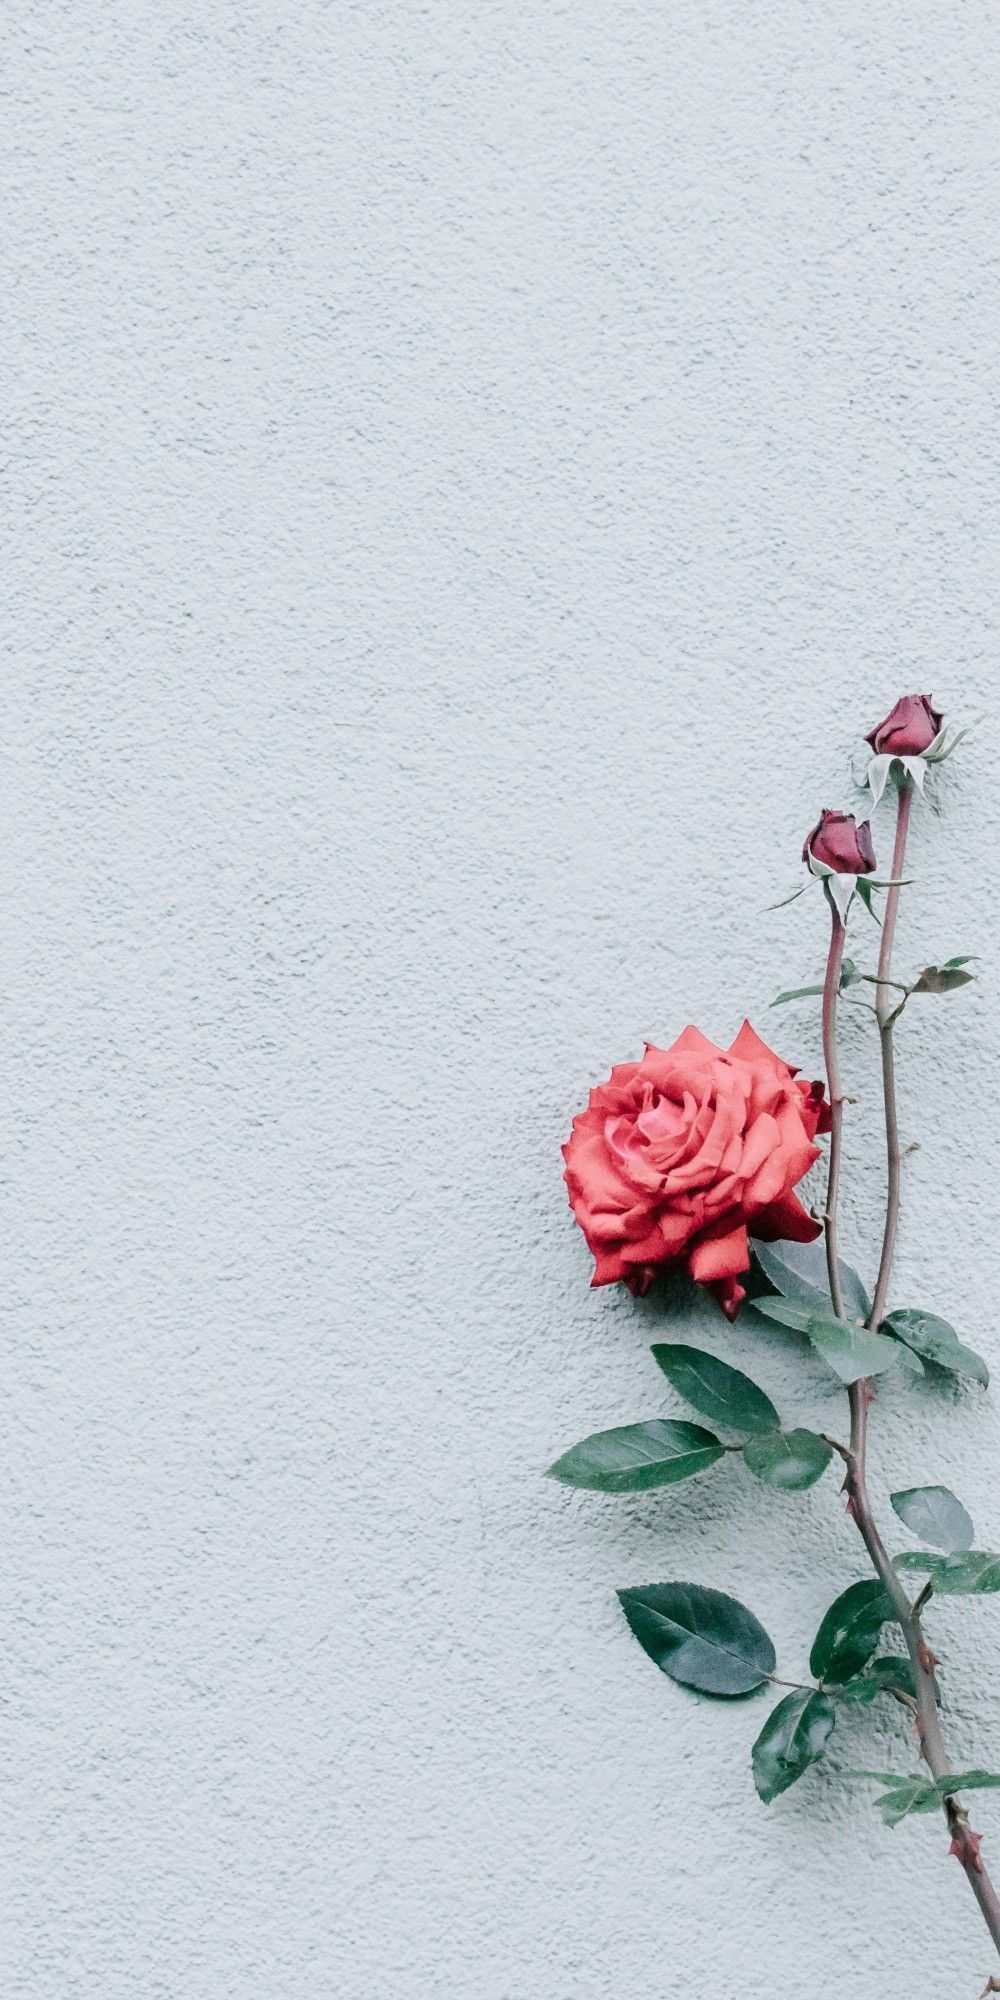 Untitled Flowers Photography Wallpaper Pink Flowers Photography Wallpaper Backgrounds